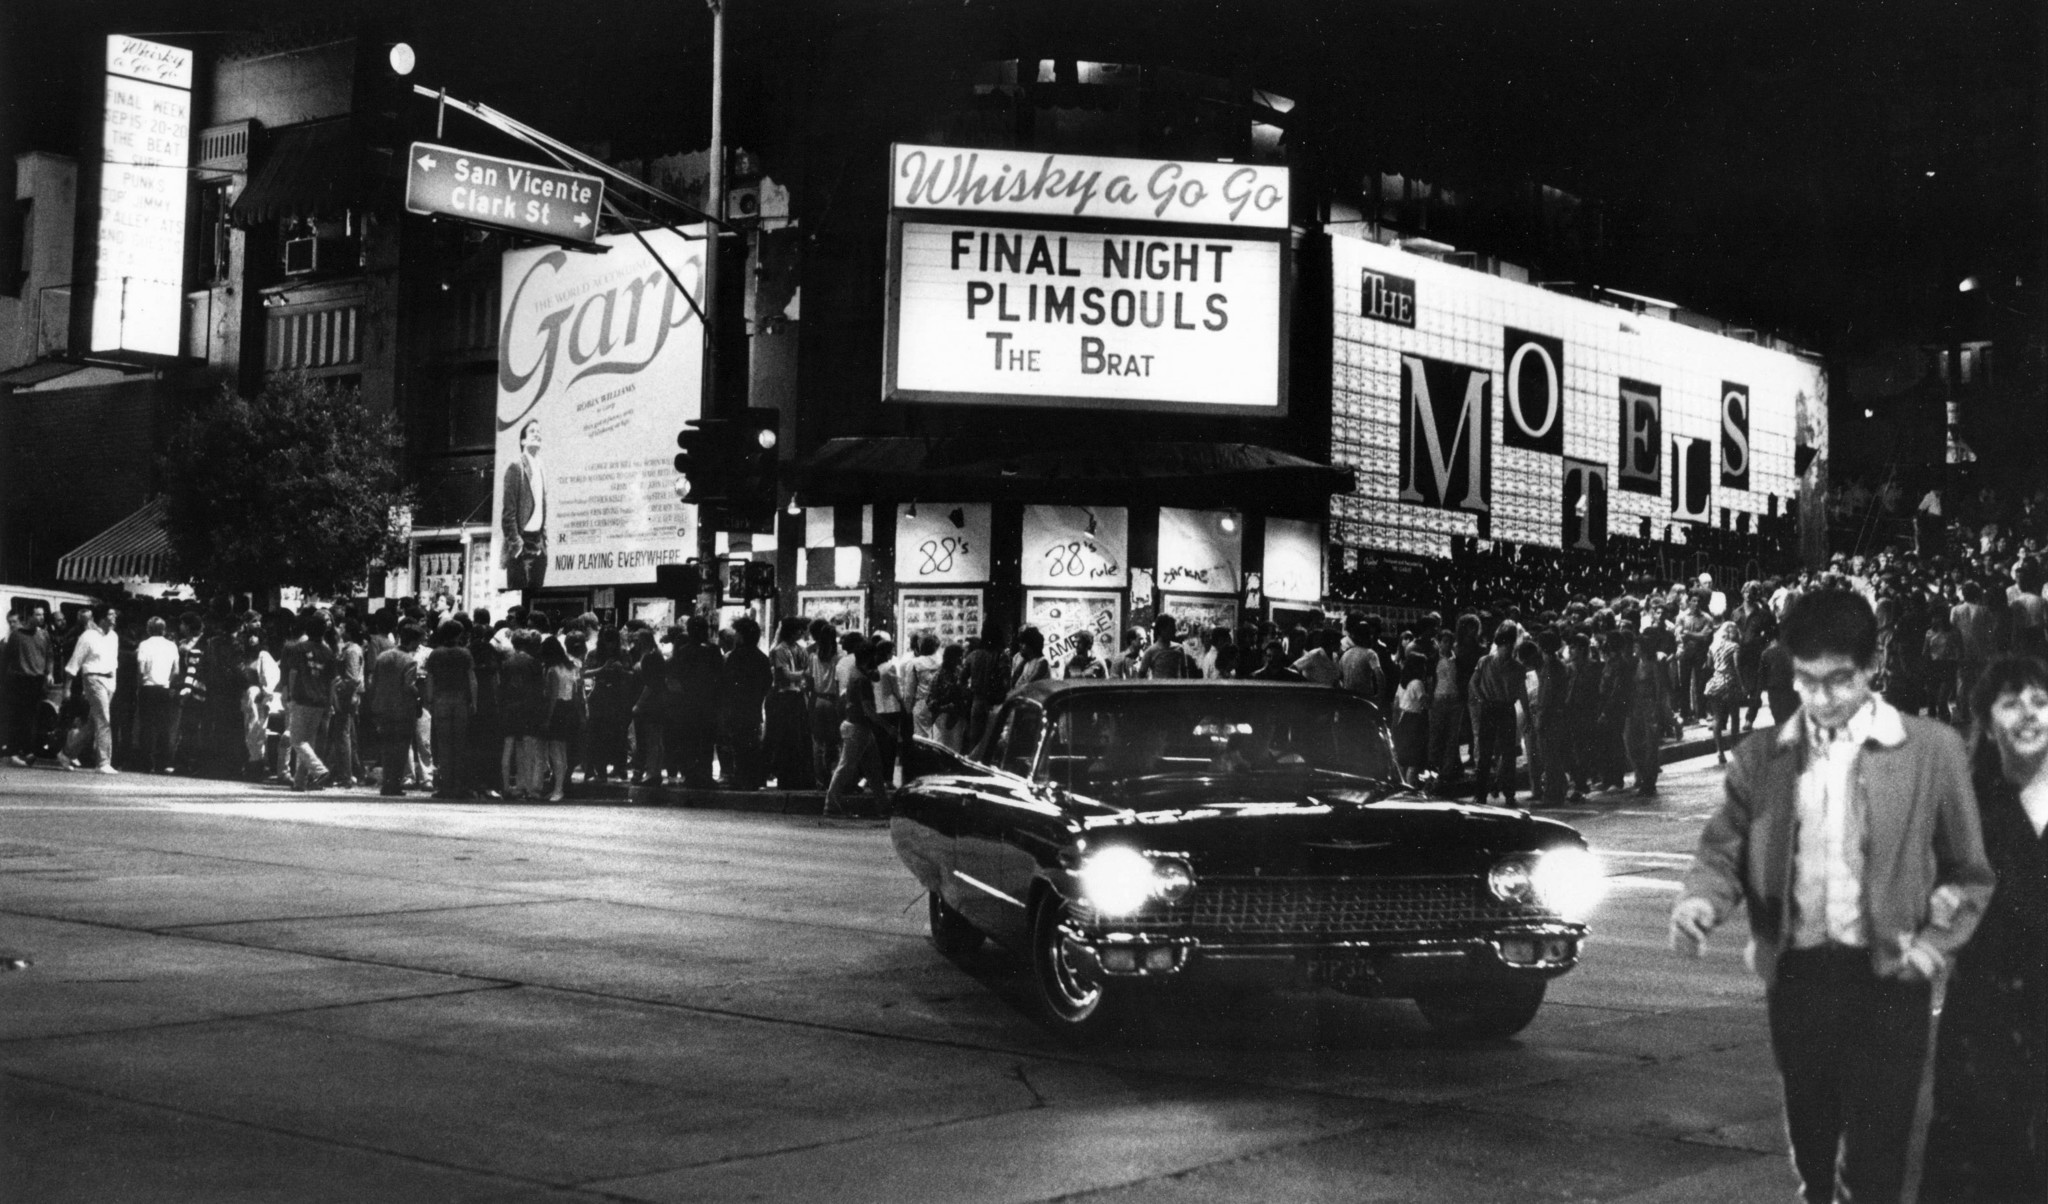 A crowd outside the Whisky a Go Go on the Sunset Strip in 1982.